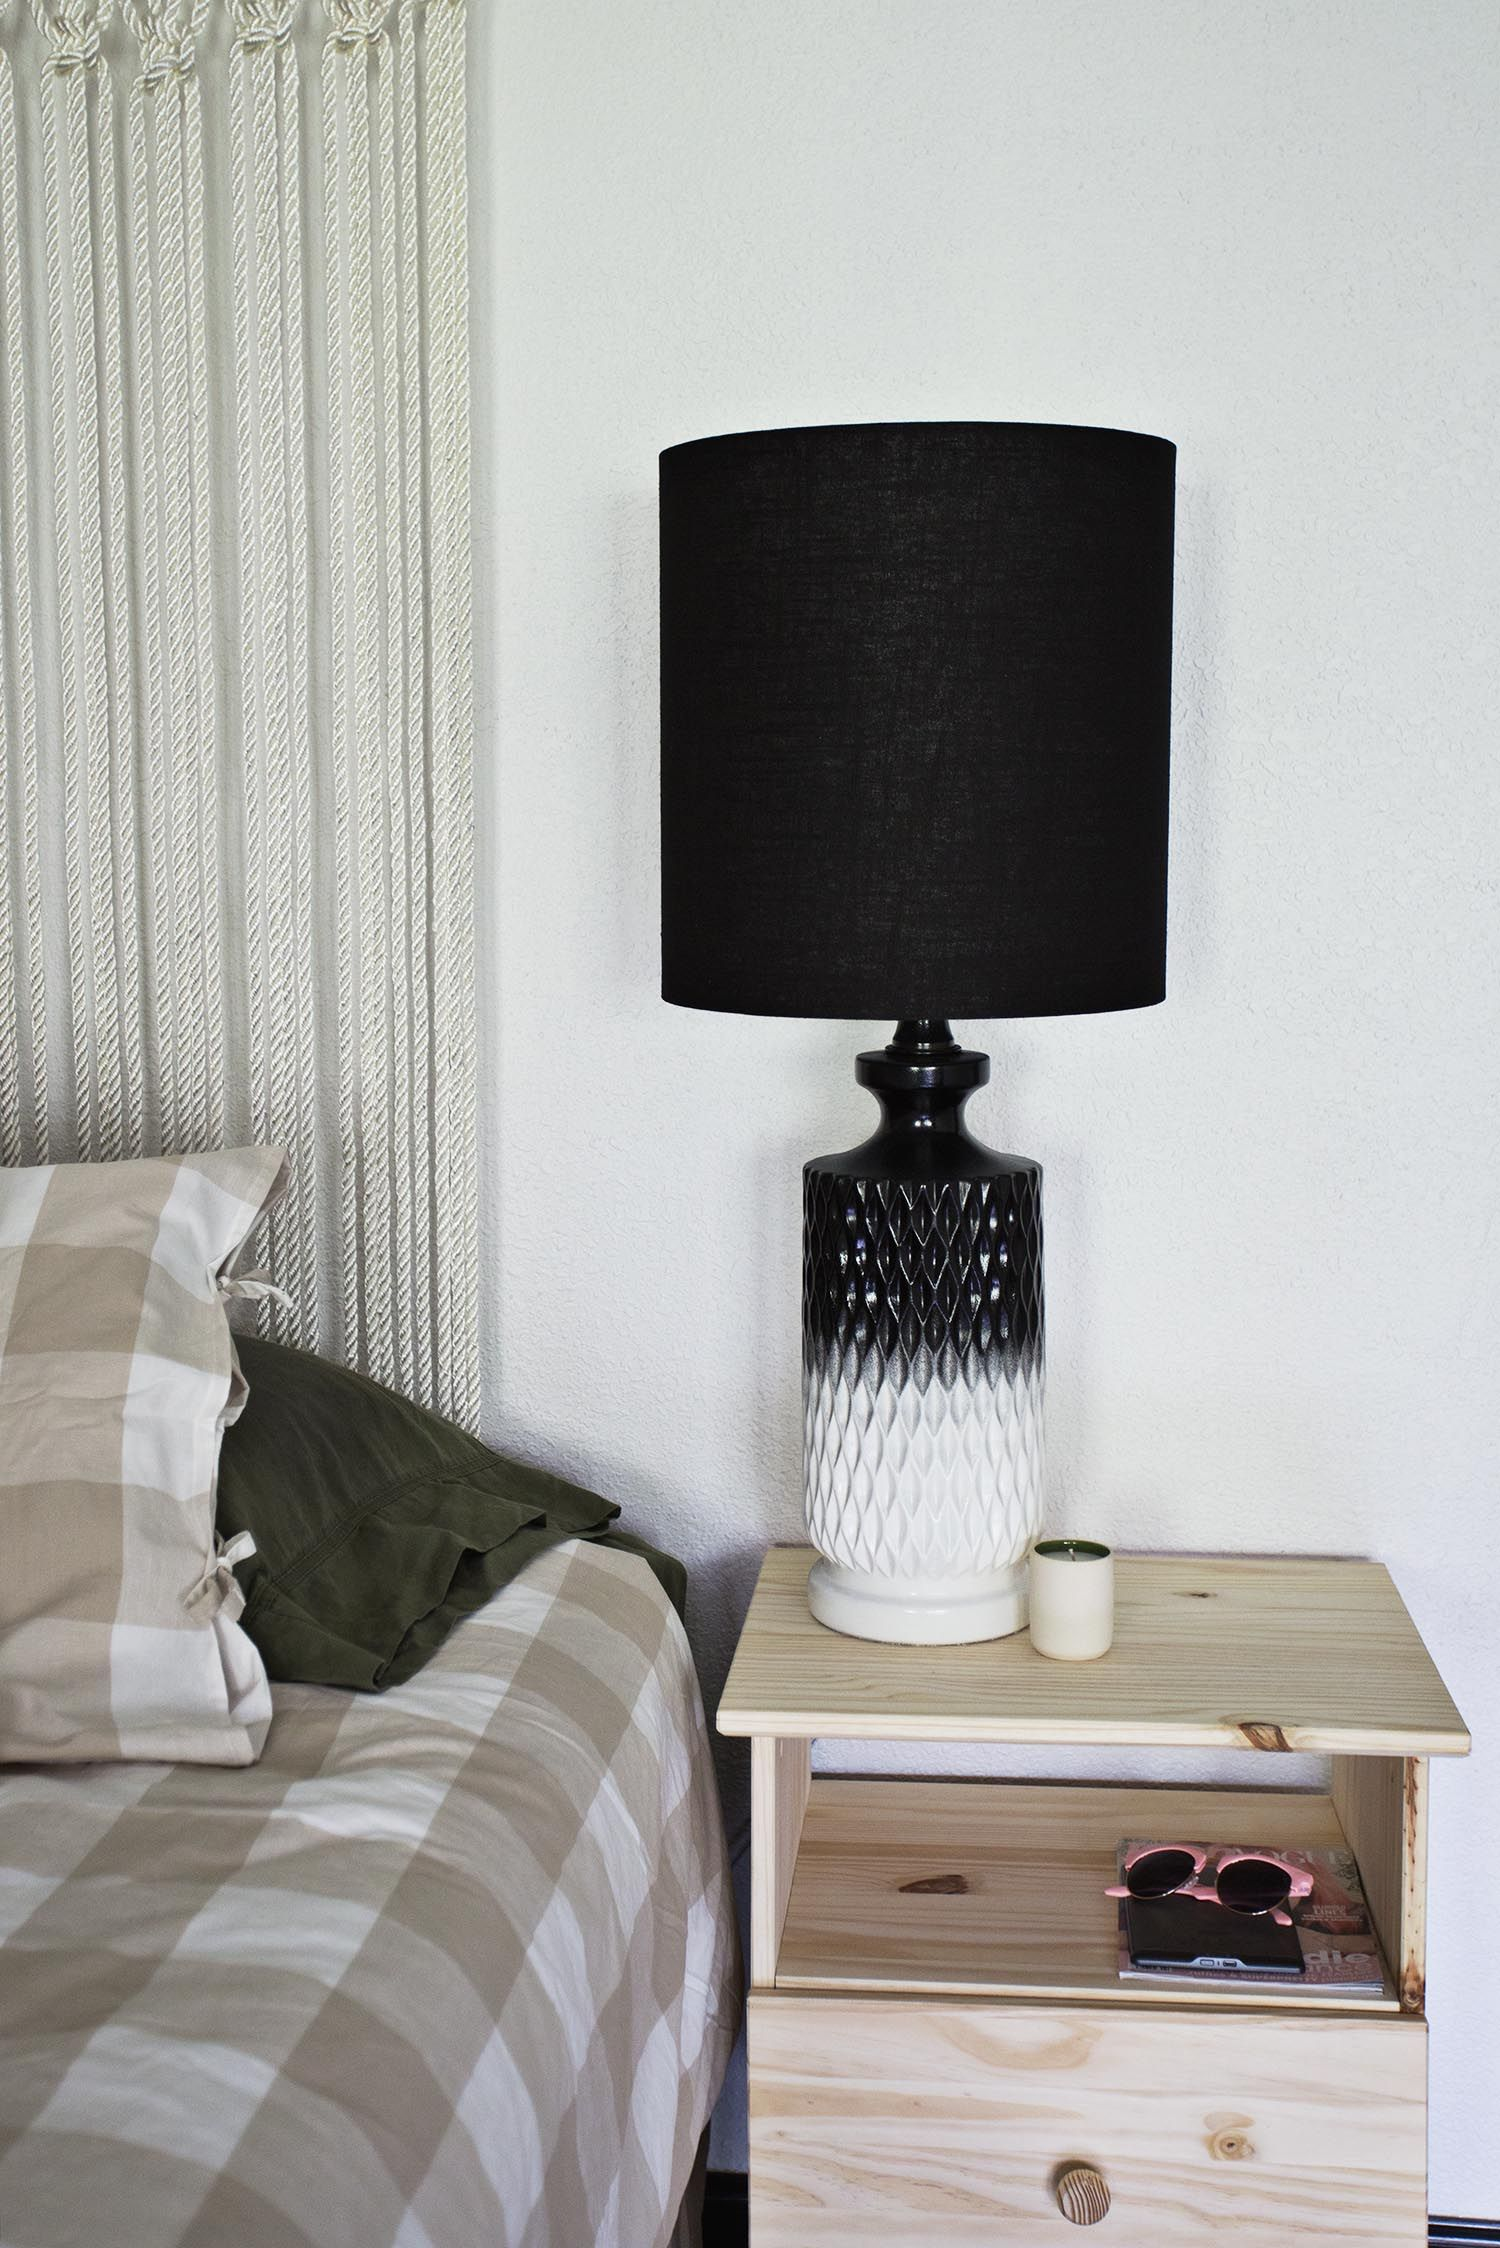 Cheap Bedside Lamp Project Restyle Bedside Lamps Interior Design Lamp